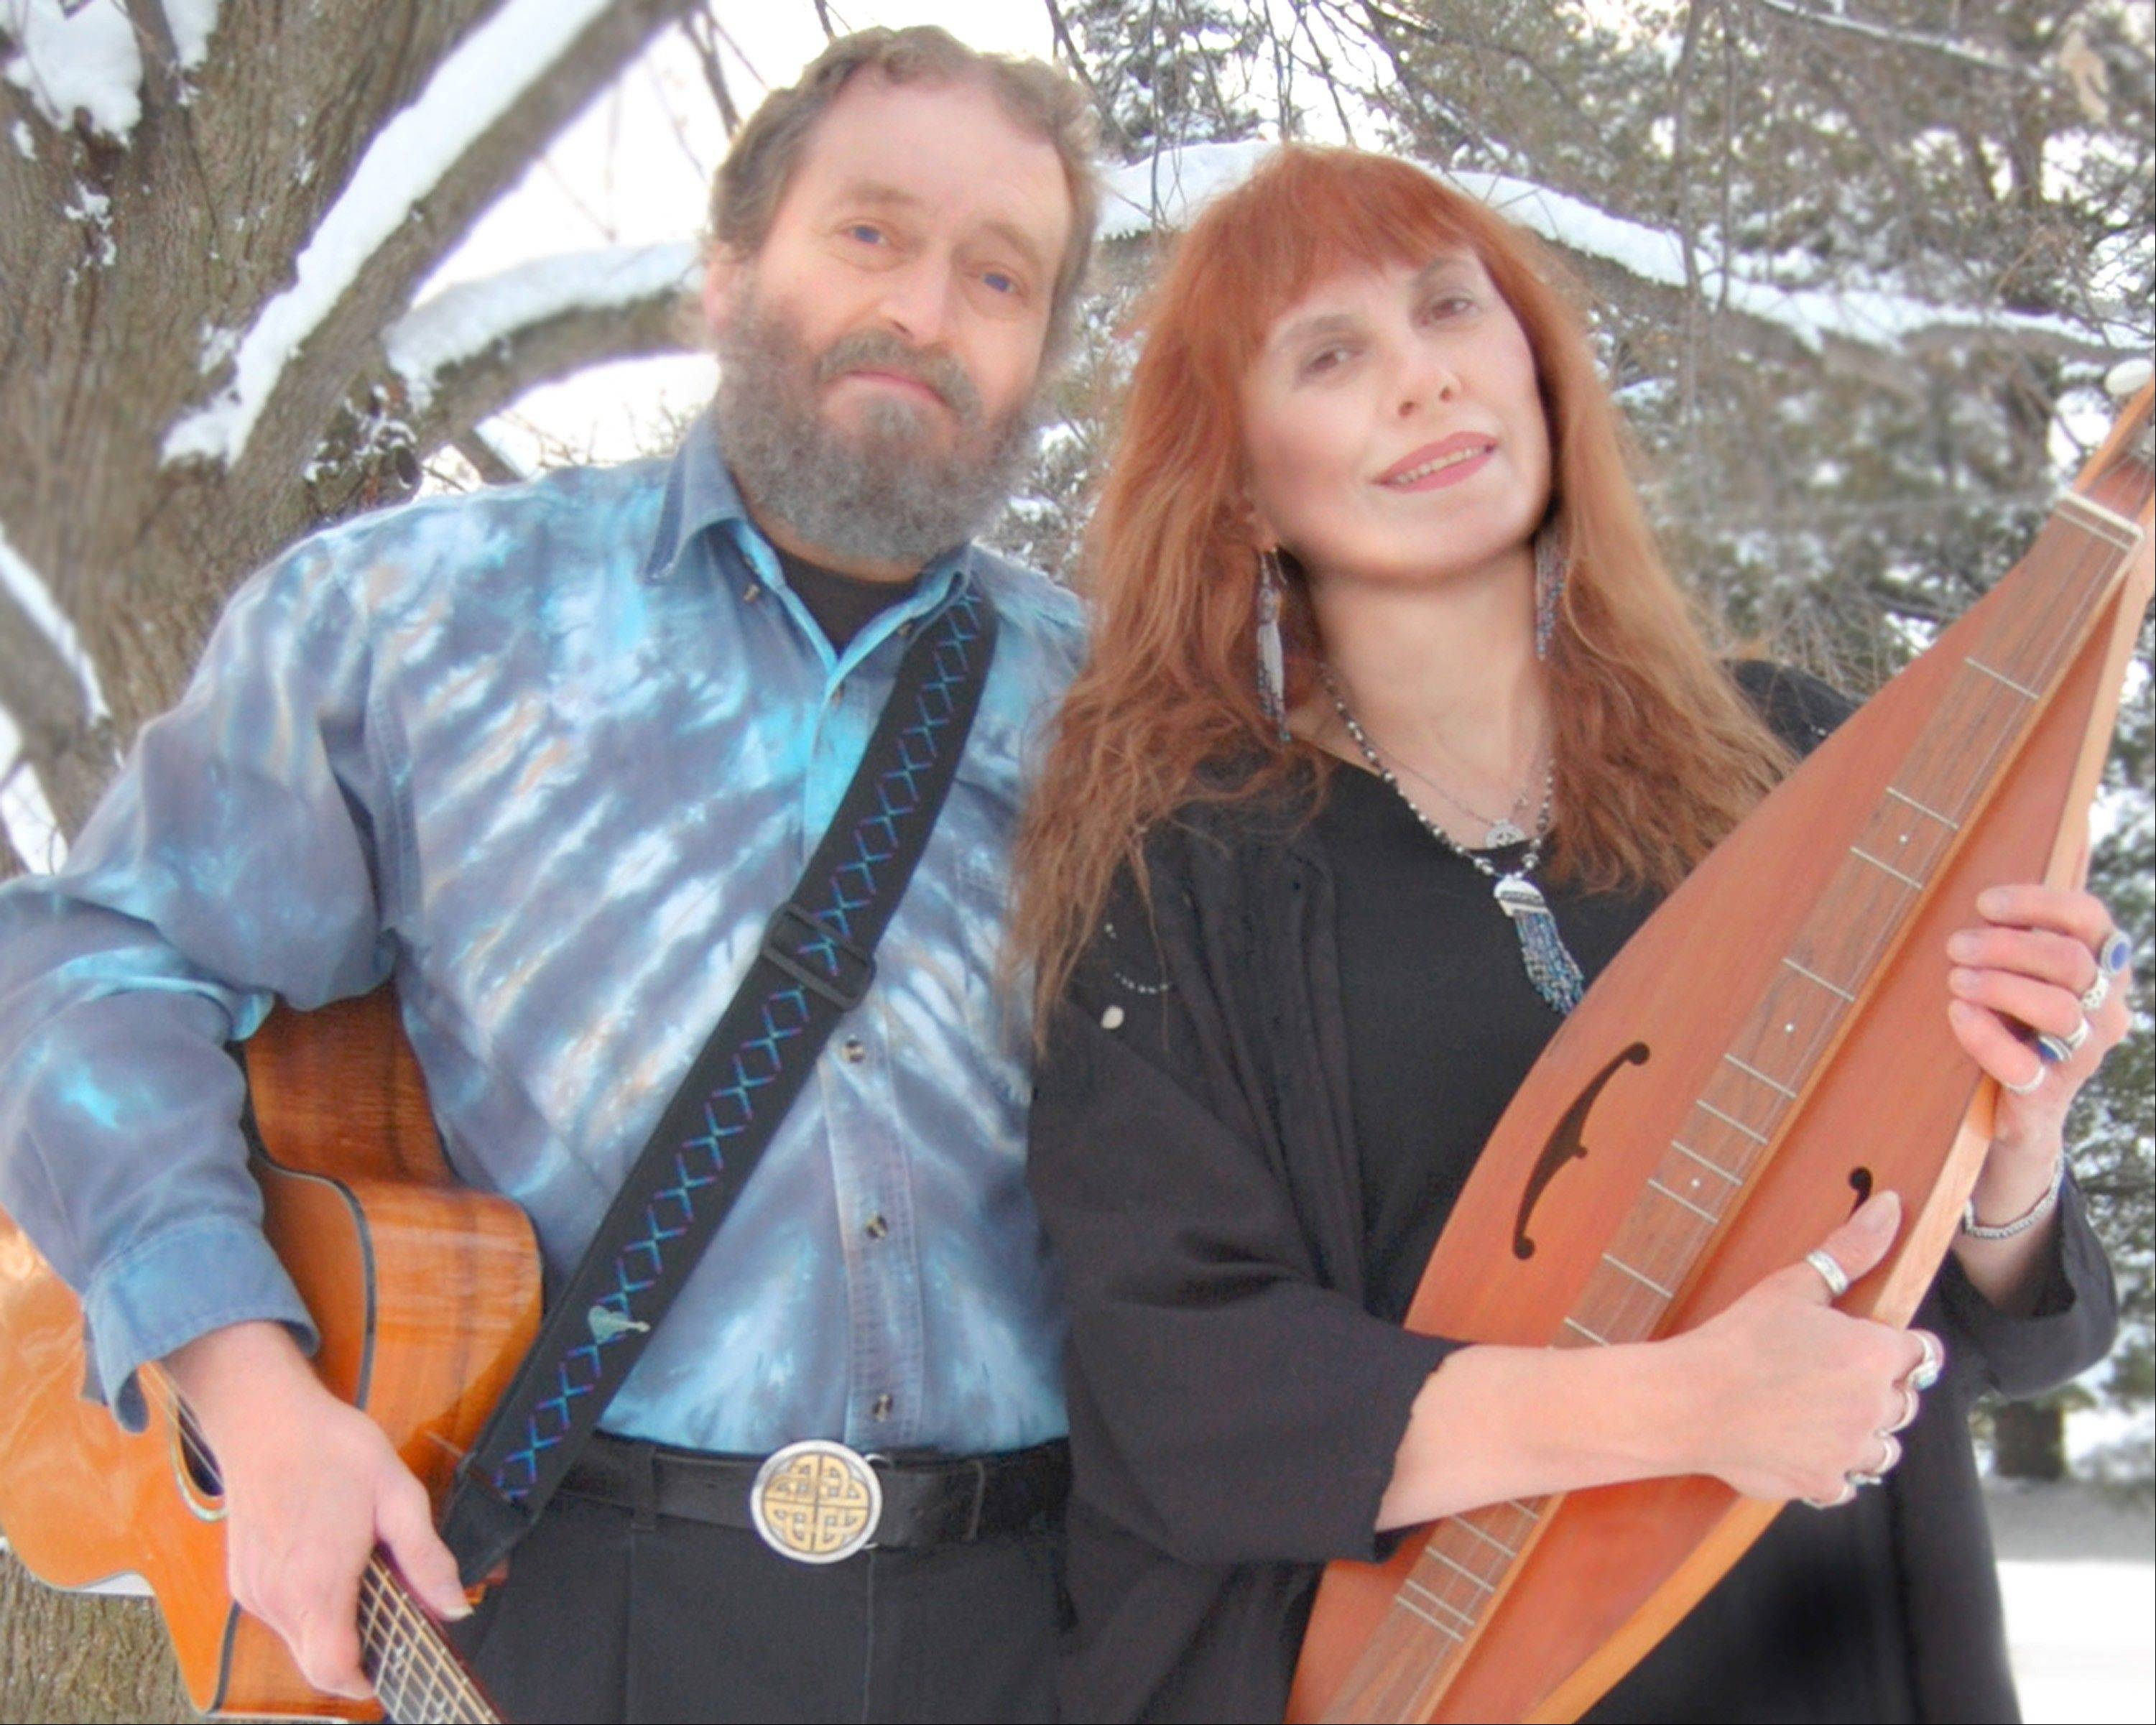 February Sky, consisting Celtic guitarist Phil Cooper with songwriter and singer Susan Urban, are a folk duo set to perform at McHenry County College's Luecht Conference Center in Crystal Lake at 3 p.m. Sunday, Jan. 12.